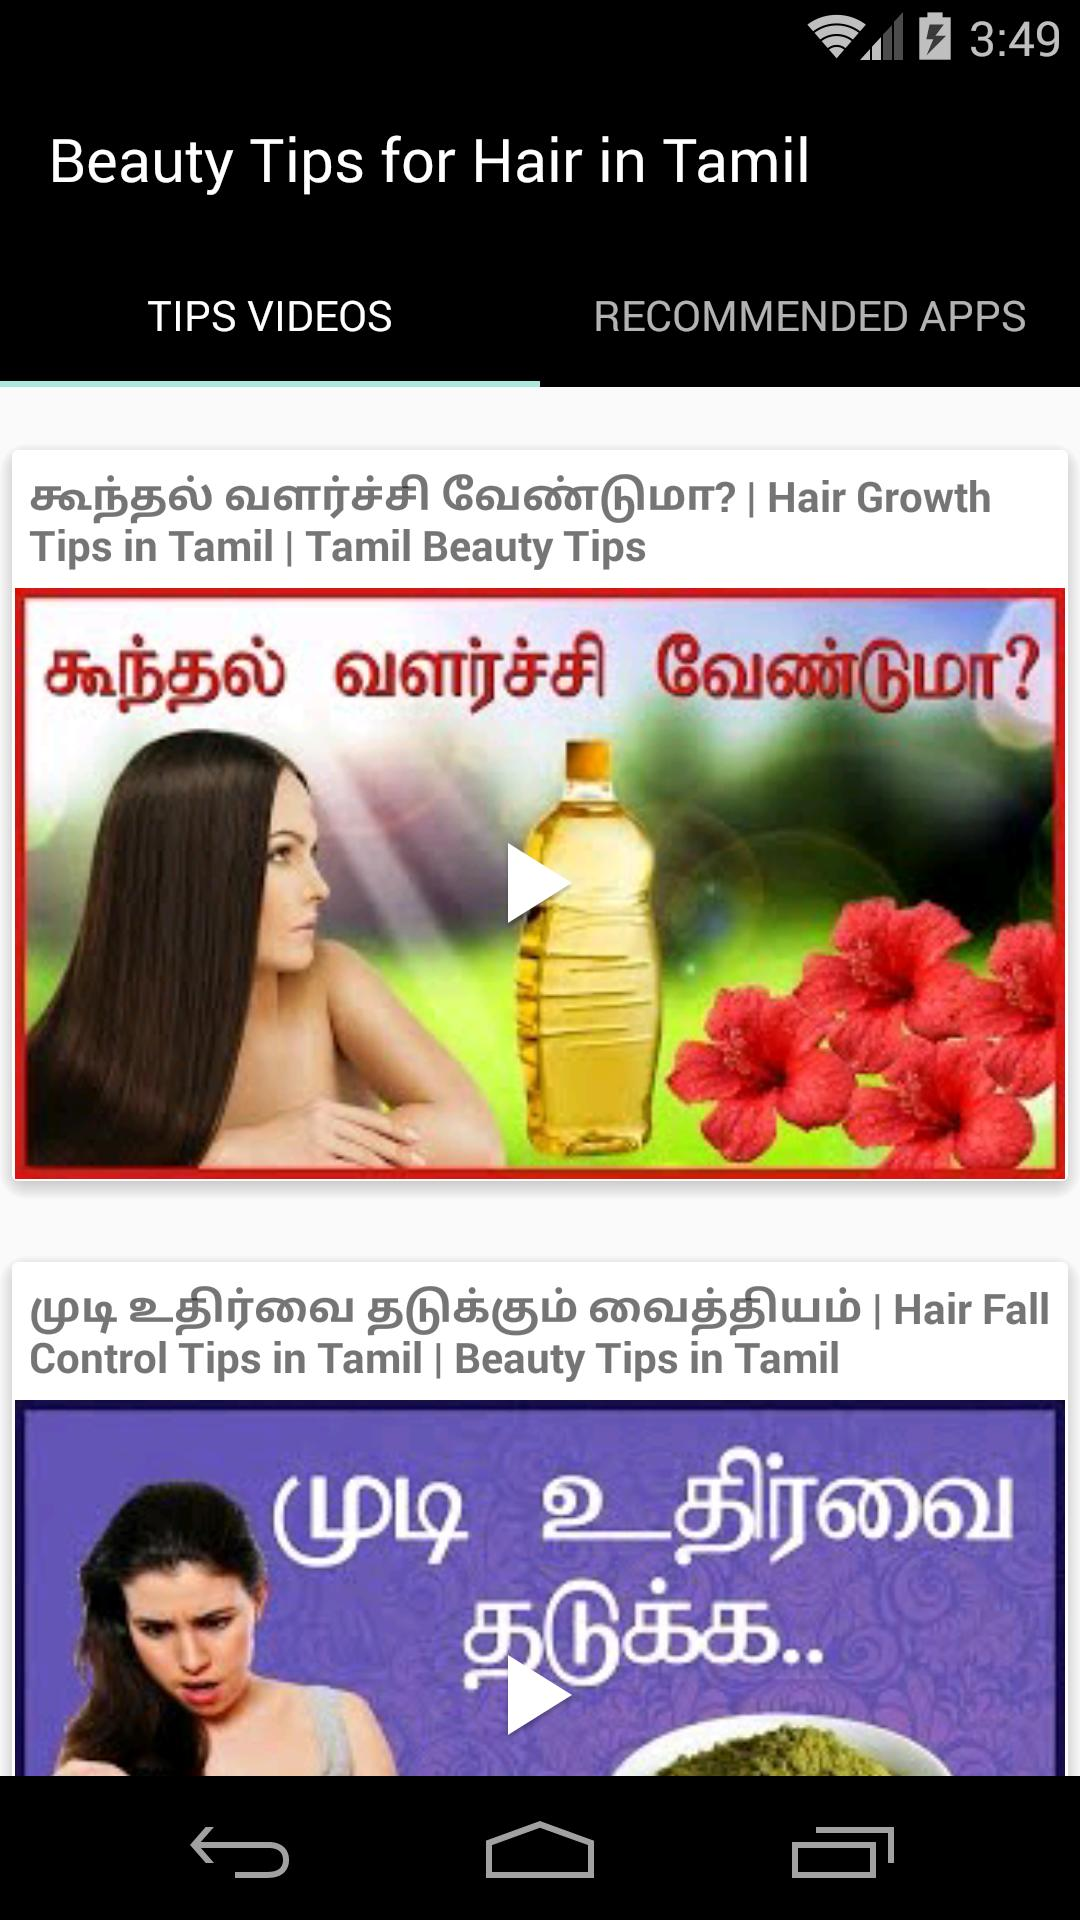 Beauty Tips For Hair In Tamil For Android Apk Download